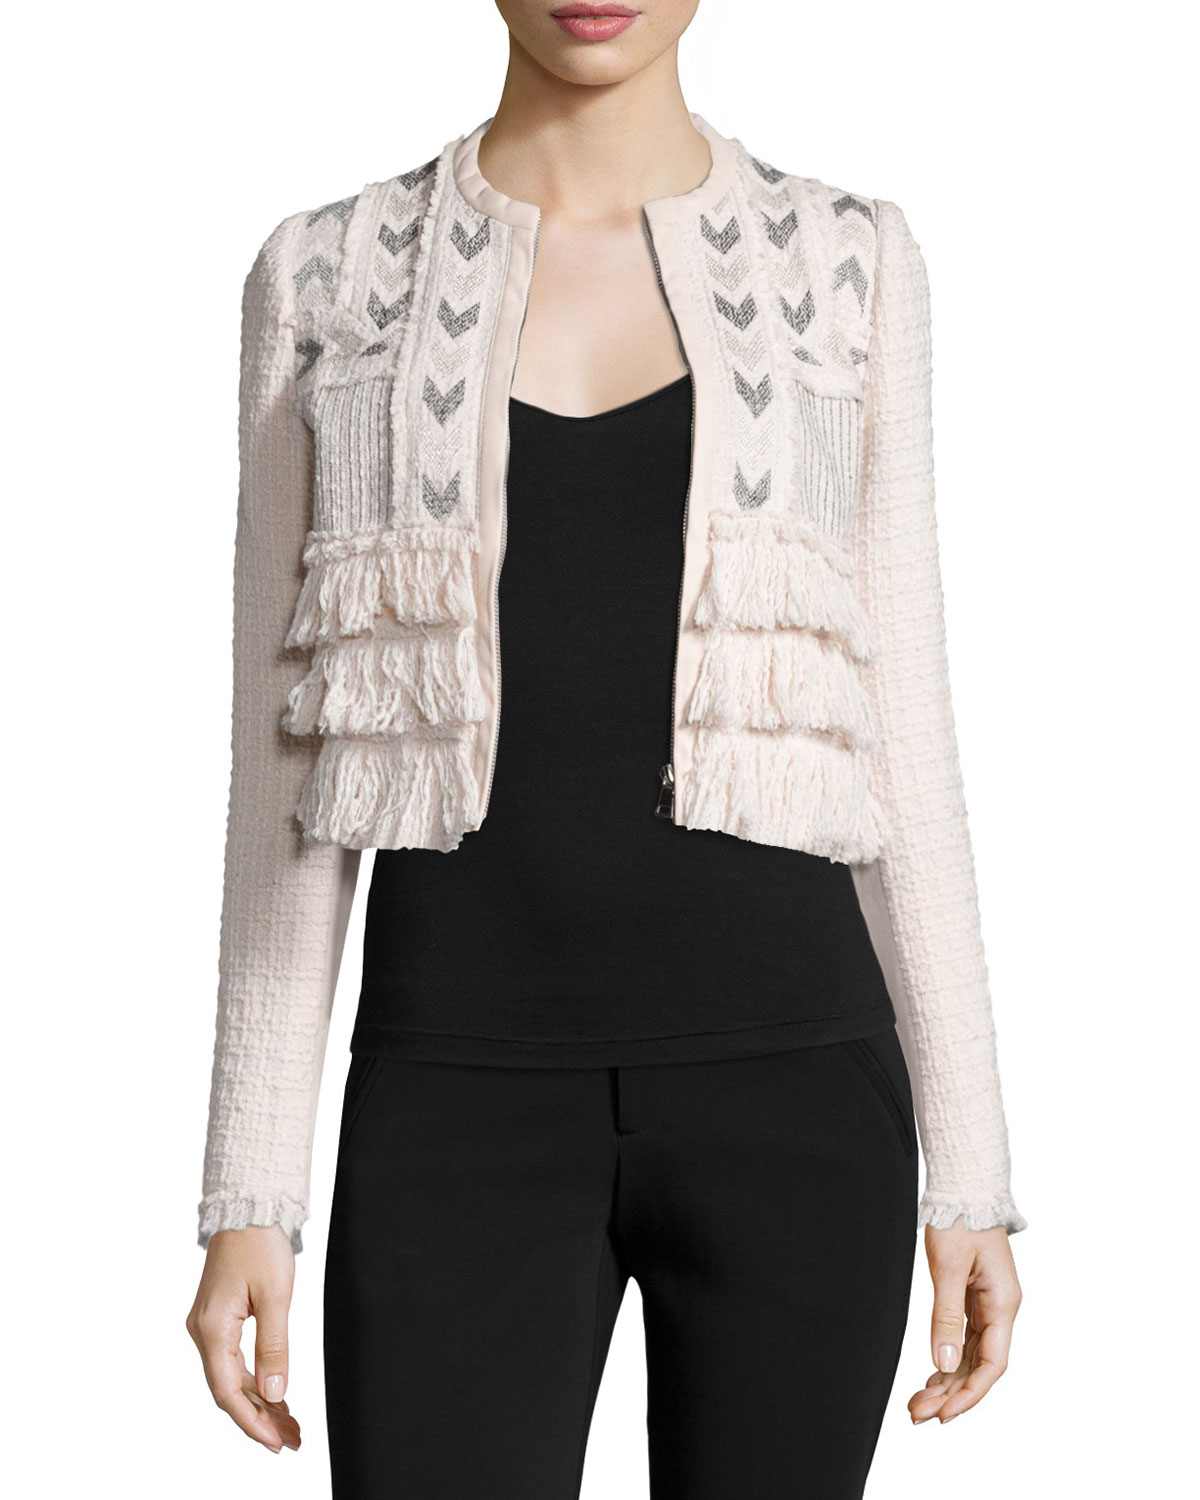 Cropped Tweed Jacket w/ Embroidery, Movida, Size: 0 - Rebecca Taylor